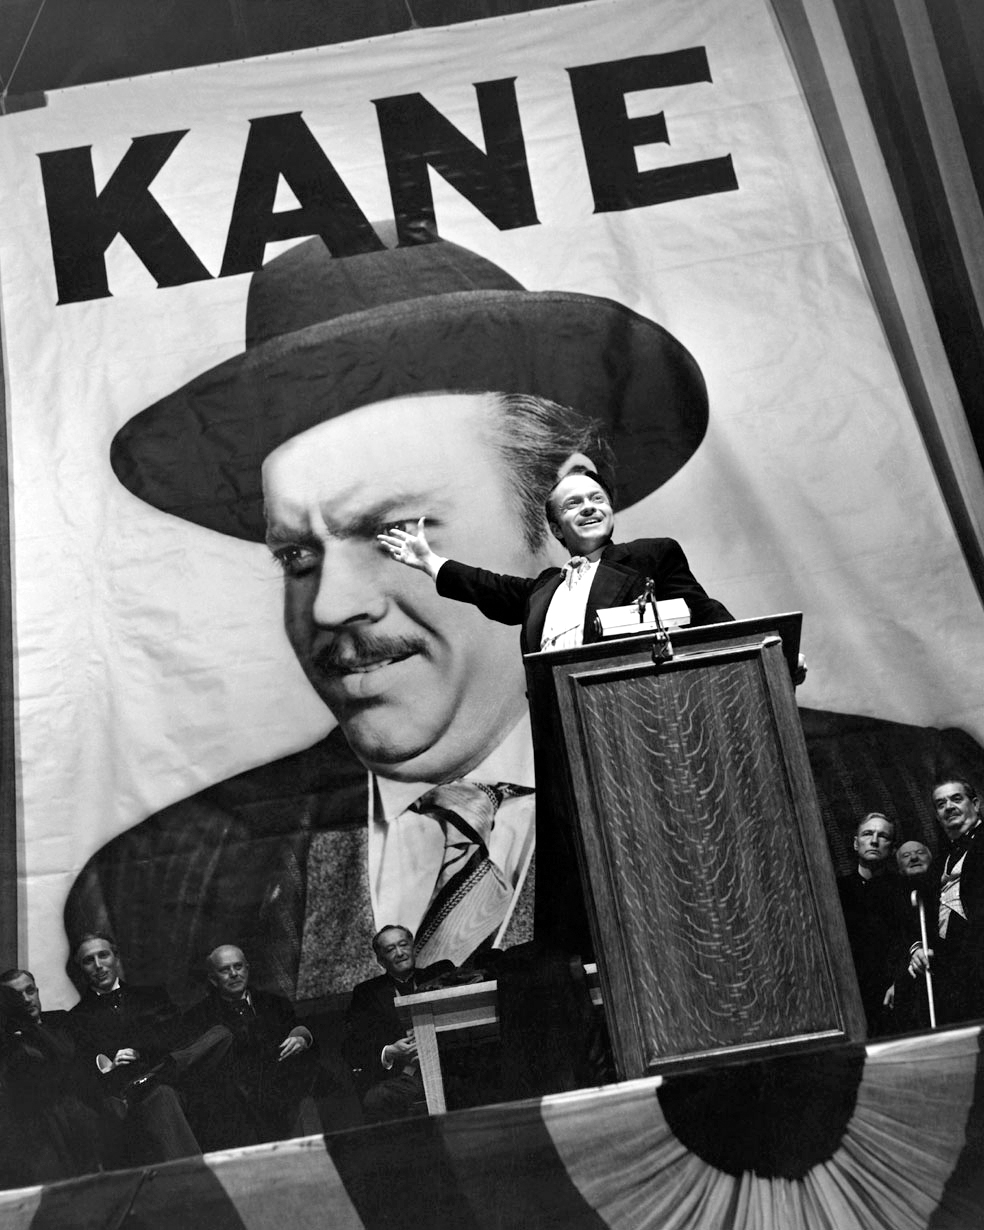 citizen kane christina wehner citizen kane welles podium